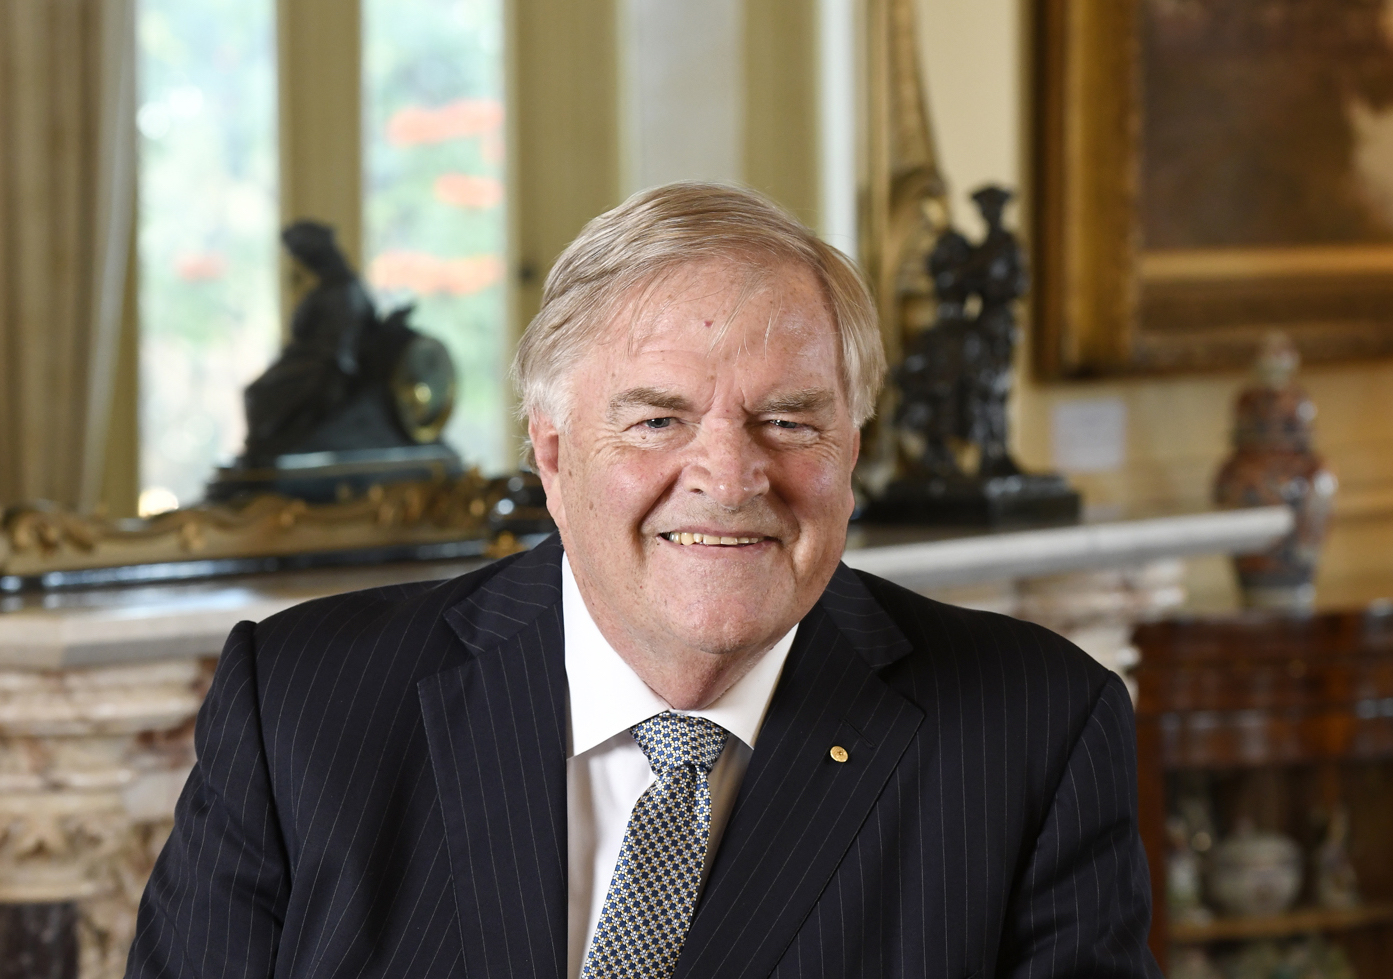 Our Patron - Honourable Kim Beazley AC, Governor of Western Australia